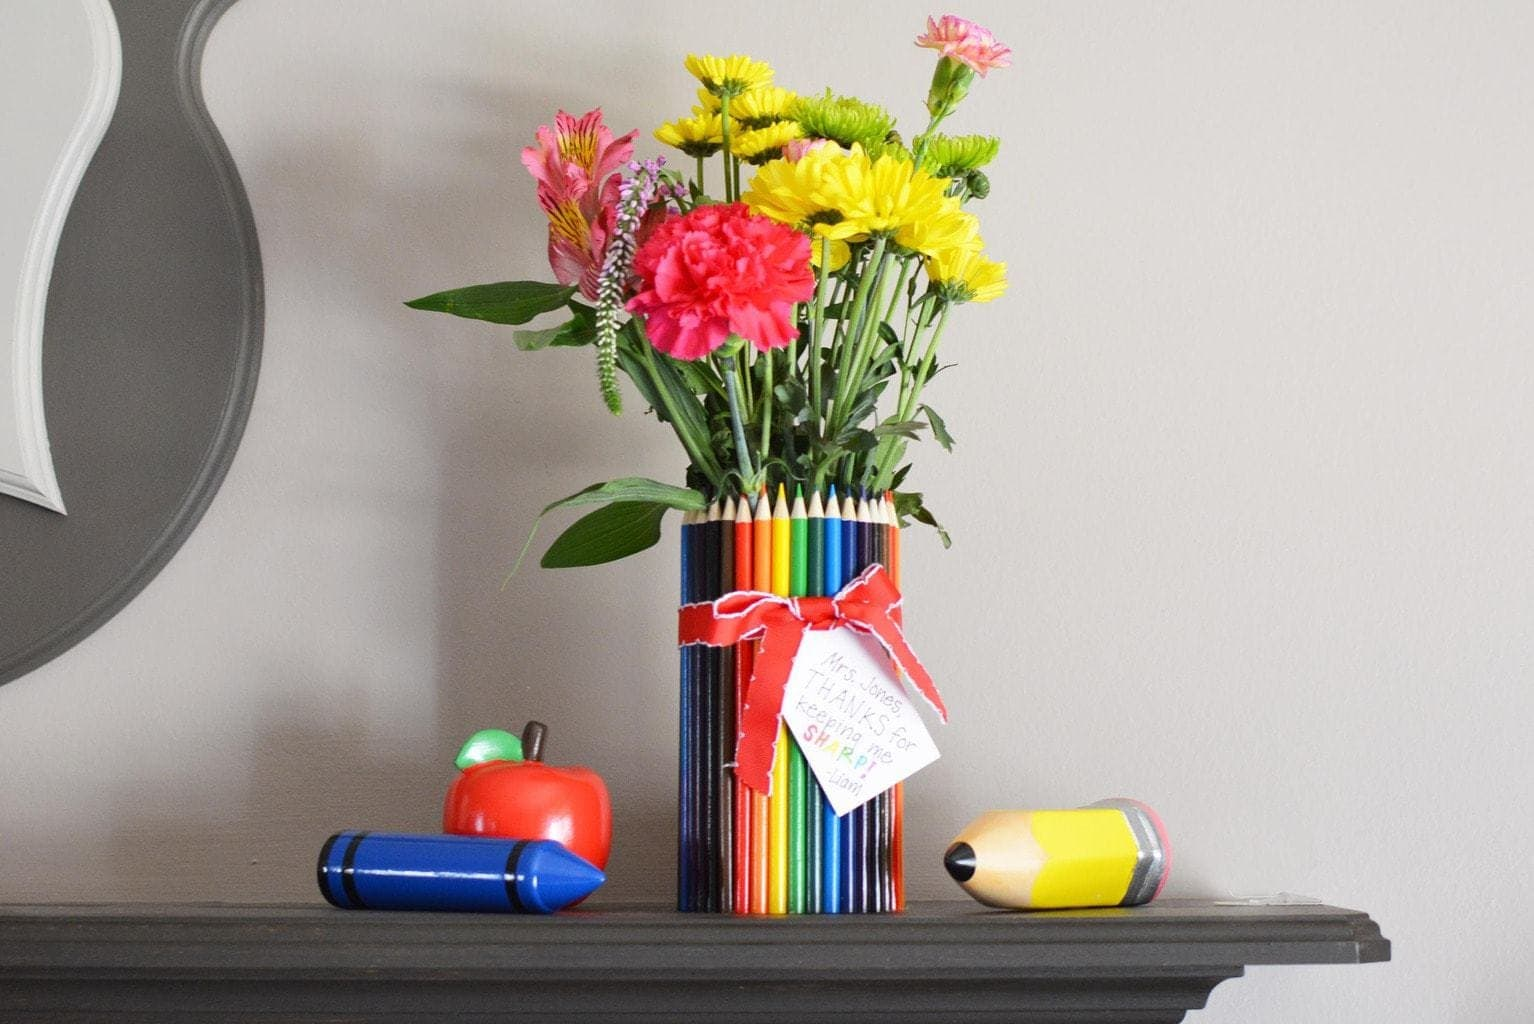 Diy Teacher Gift Idea How To Make A Colored Pencil Flower Vase